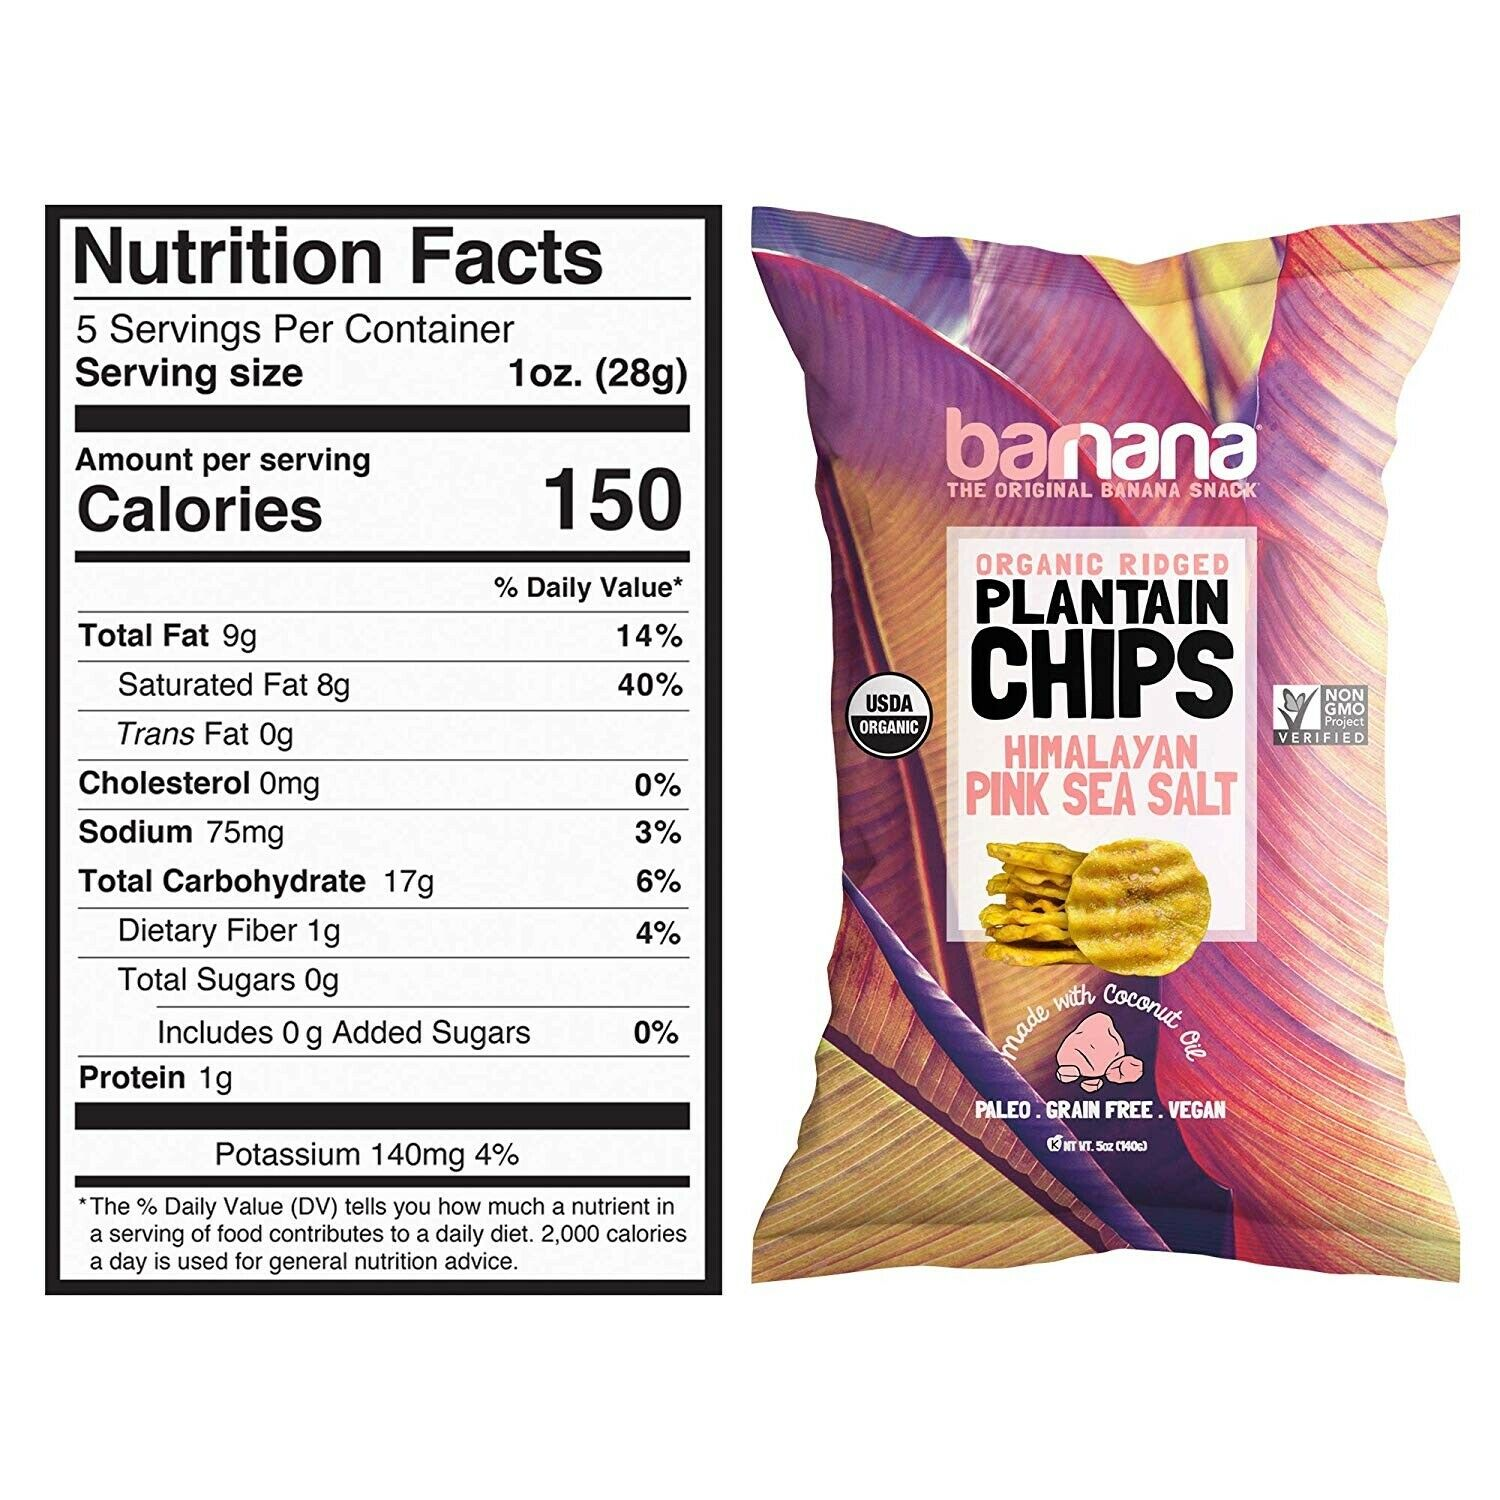 Barnana Organic Plantain Chips - Himalayan Pink Salt - 5 Ounce, 8 Pack Plantains